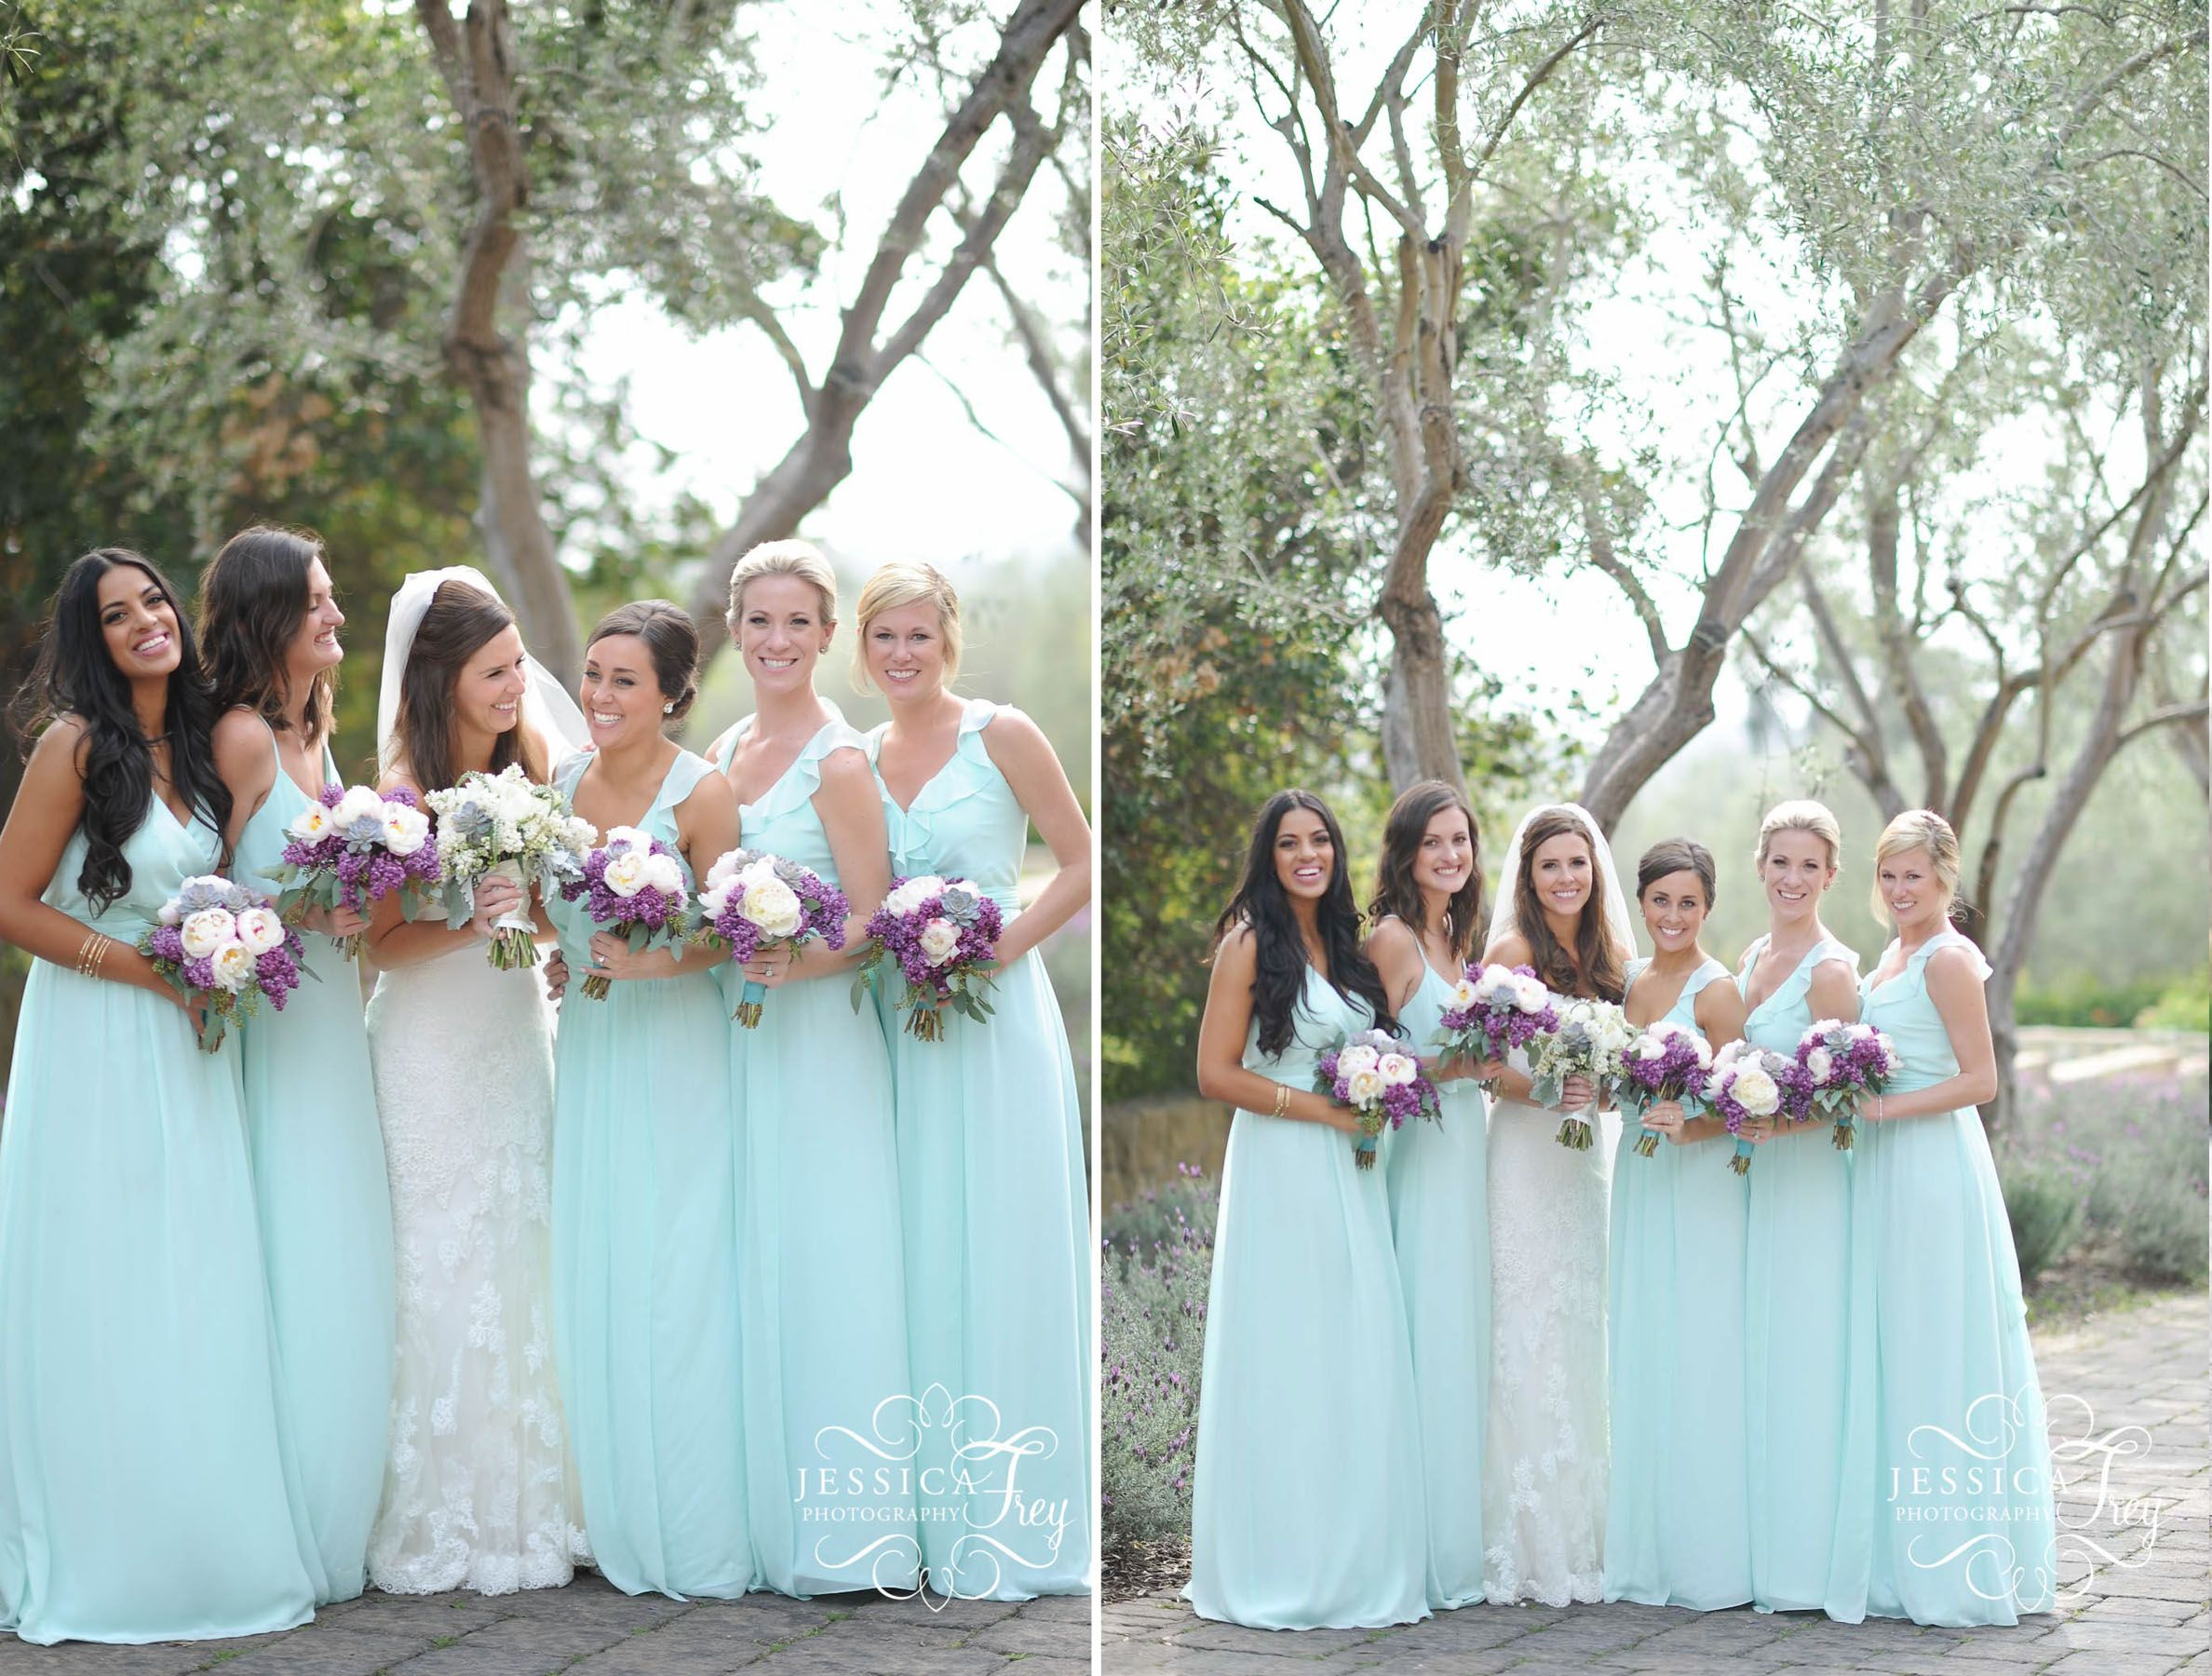 Jessica frey photography santa barbara wedding joanna august jessica frey photography santa barbara wedding joanna august bridesmaid teal bridesmaid dresses ombrellifo Image collections